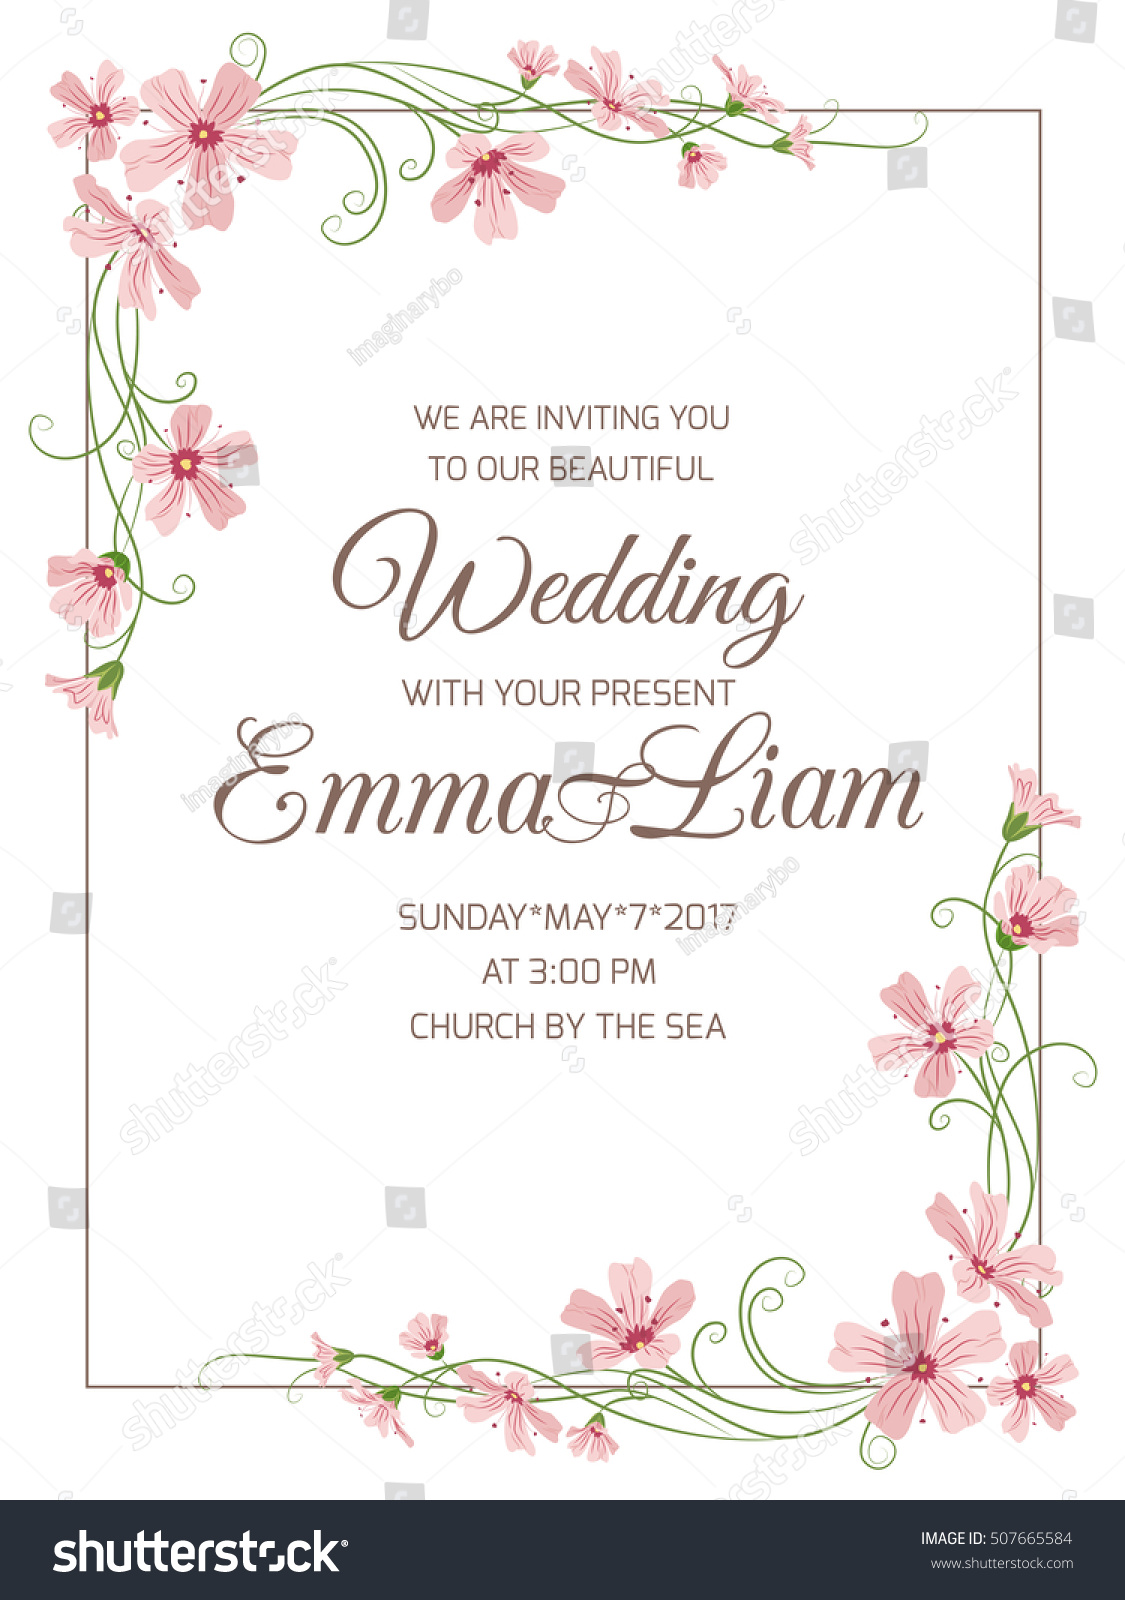 Corner designs for wedding cards